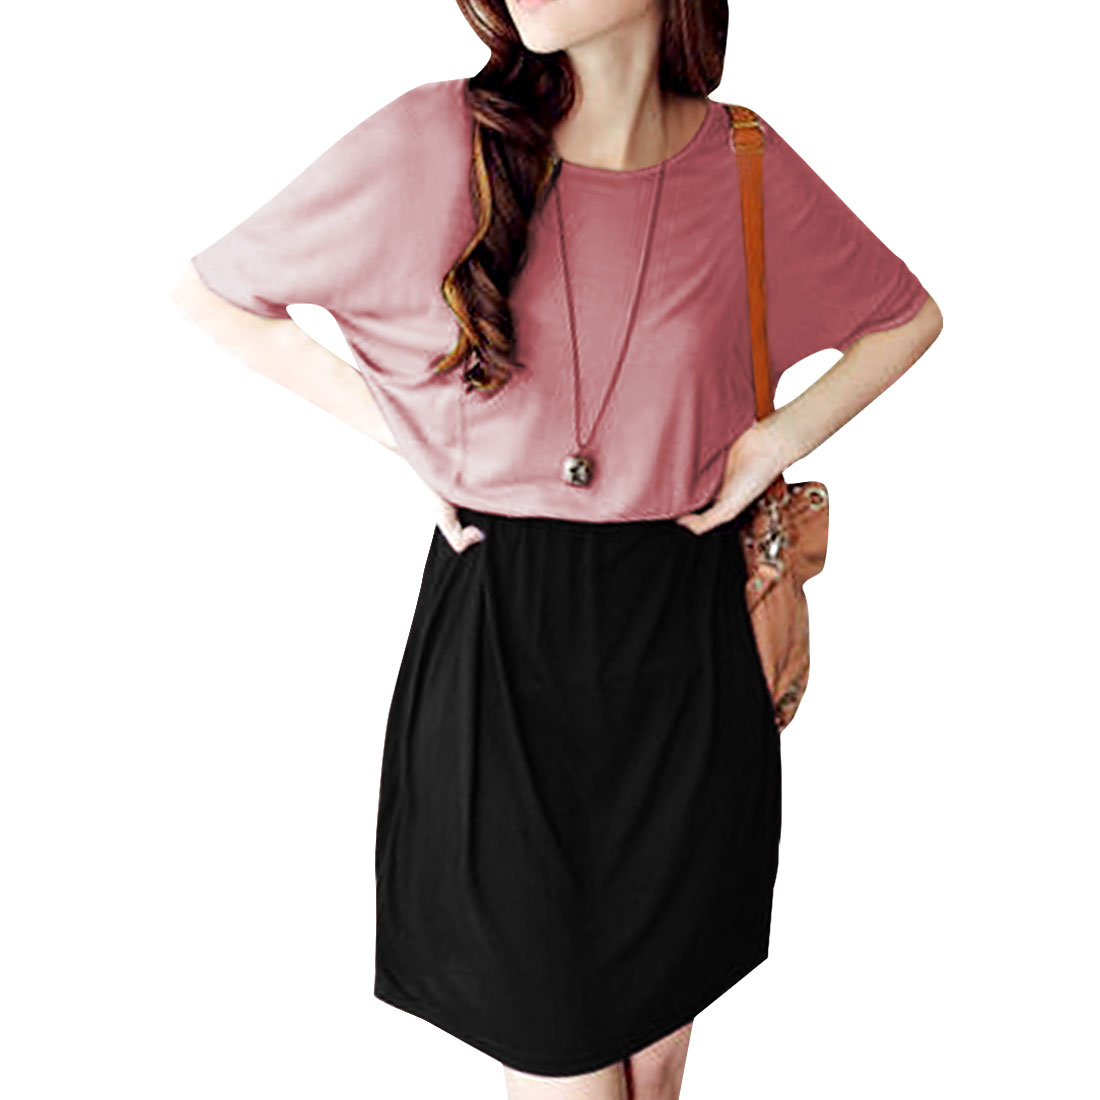 Ladies Short Sleeves Above Knee Panel Chic Dress Red-Violet Black S